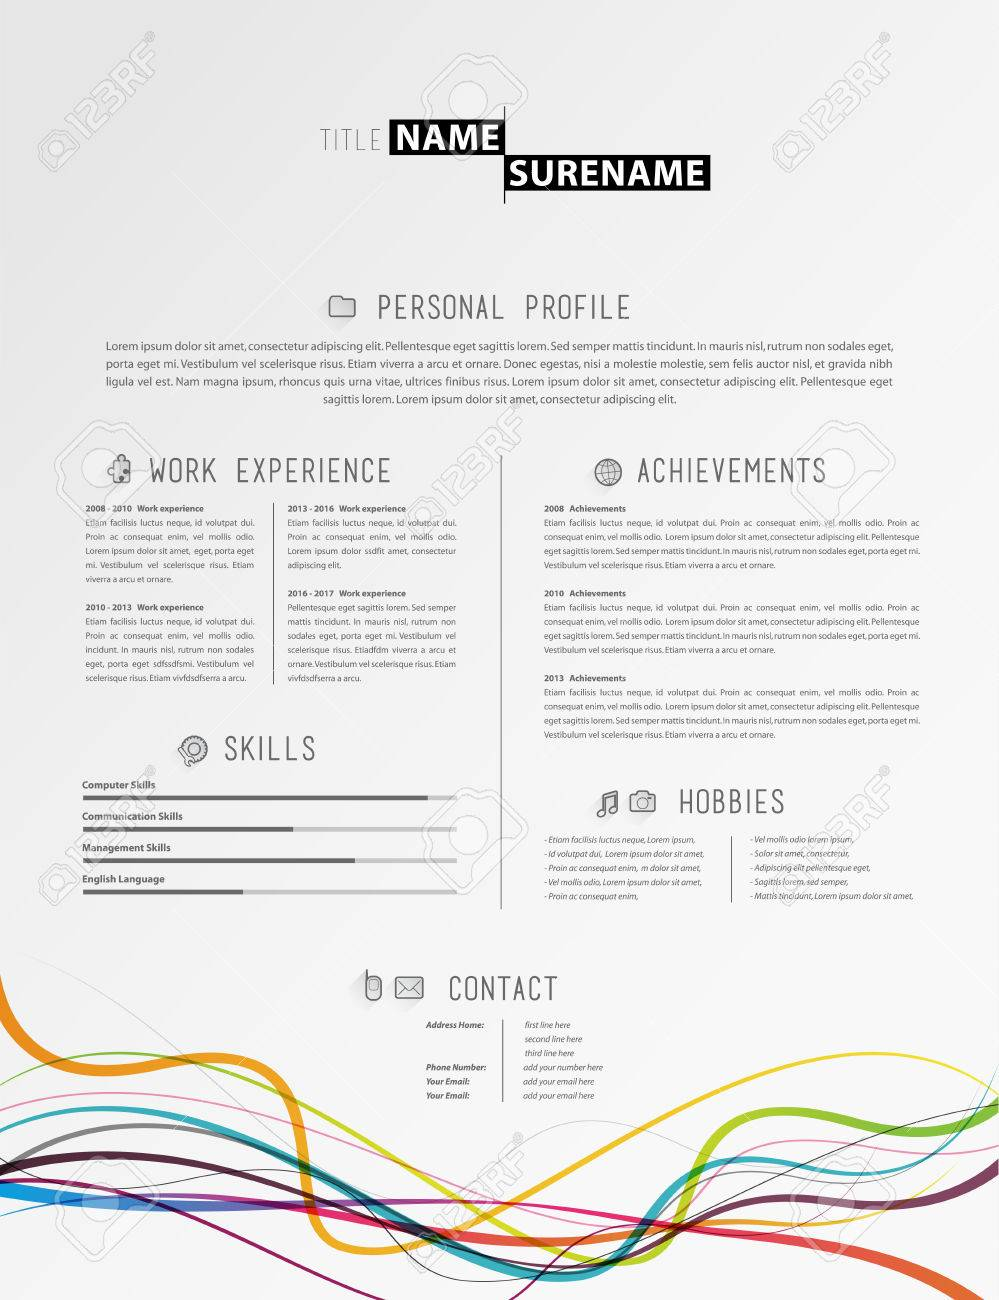 Creative Simple Cv Template With Colorful Lines At The Footer. Stock Vector    64539004